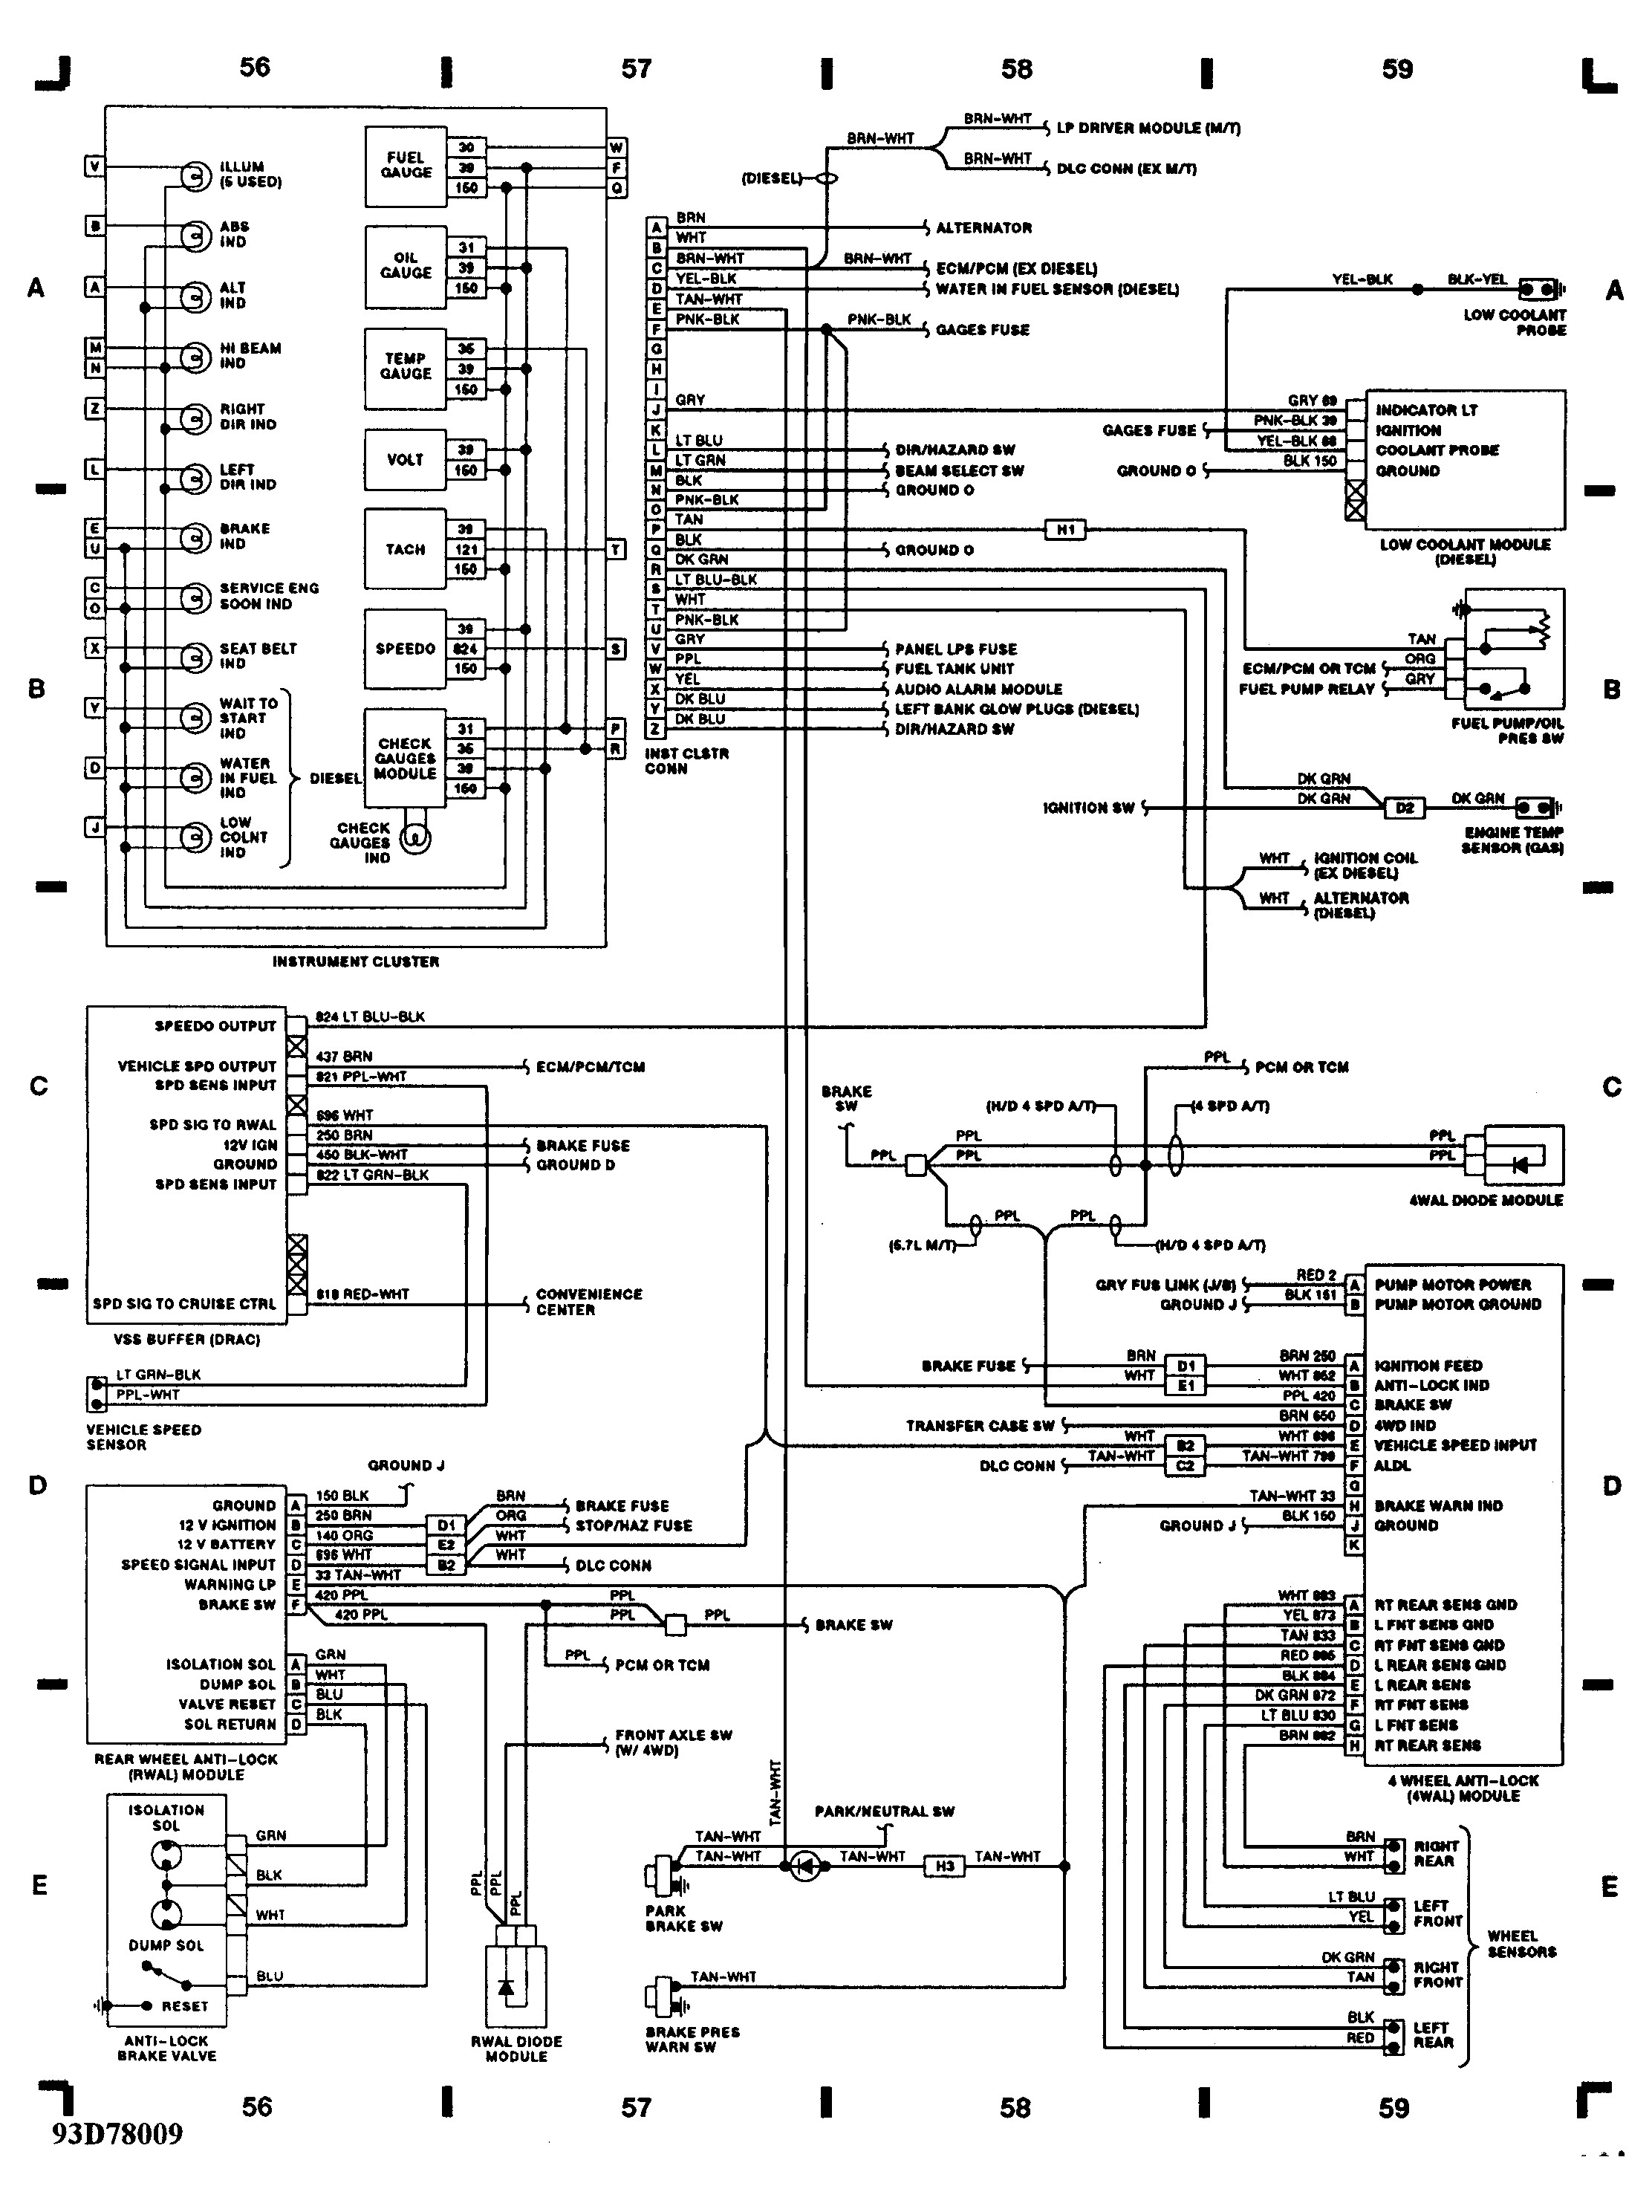 cat 3126 ecm wiring diagram | free wiring diagram cat d8r wire diagram 3116 cat engine wire diagram #12